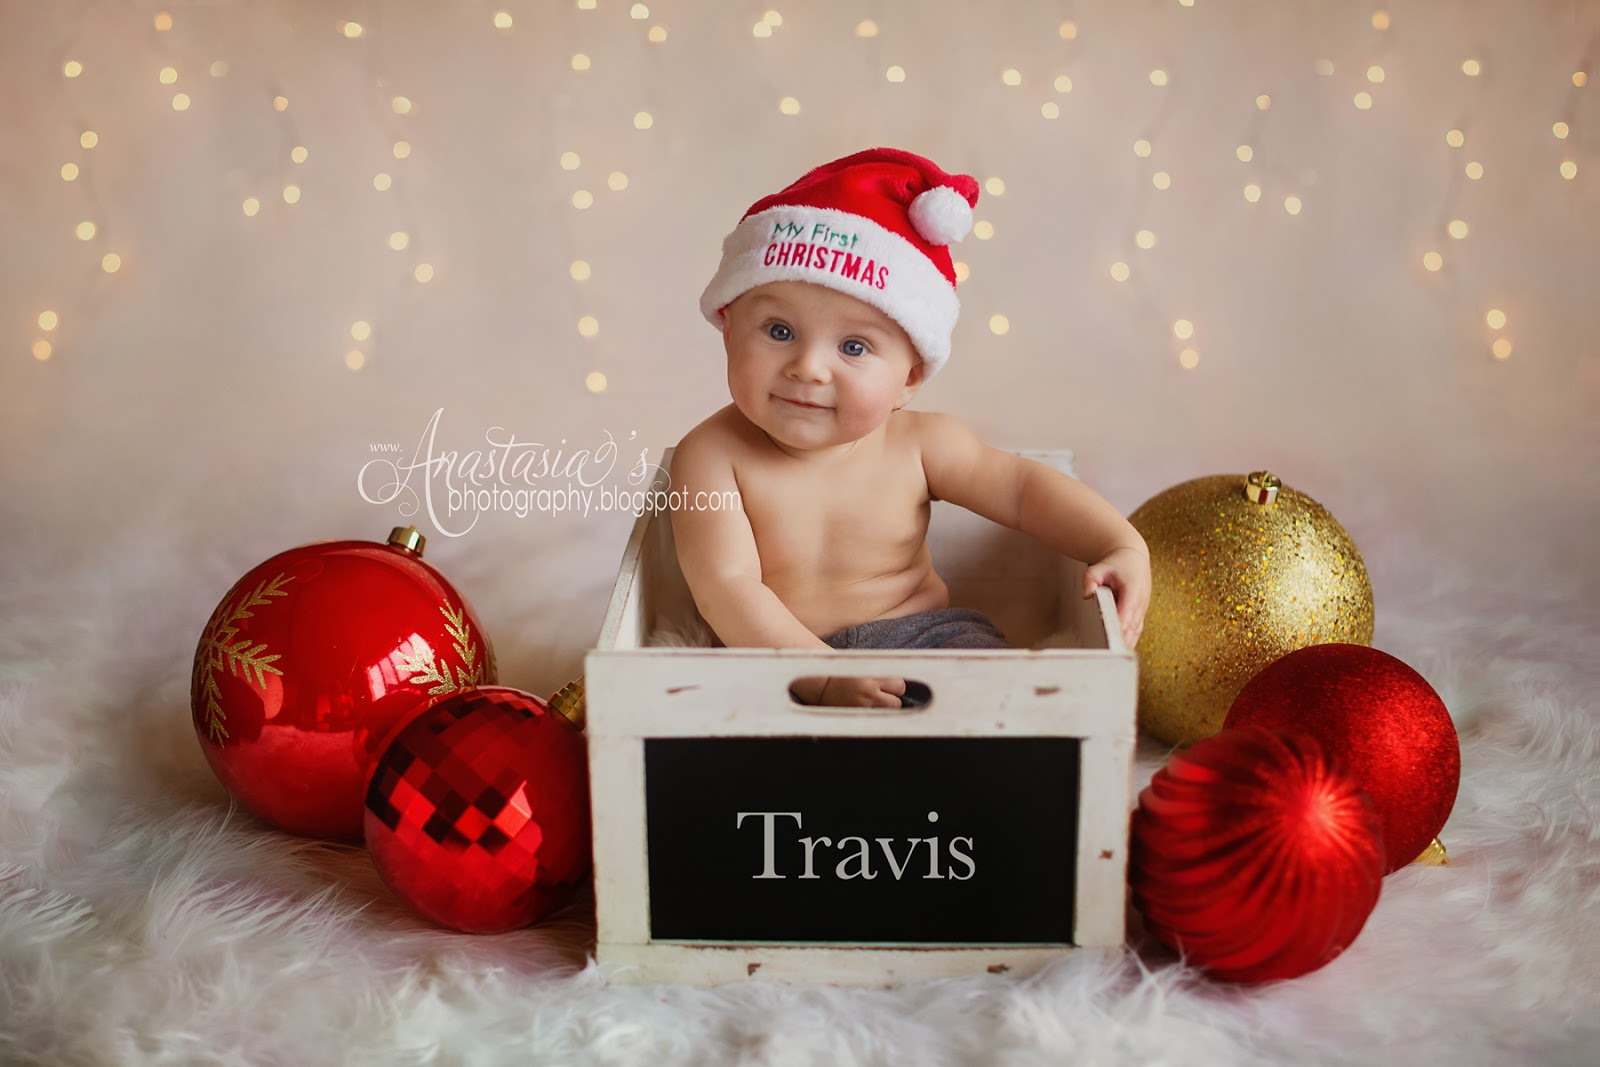 Penfield studio christmas holiday baby photos with santa hat